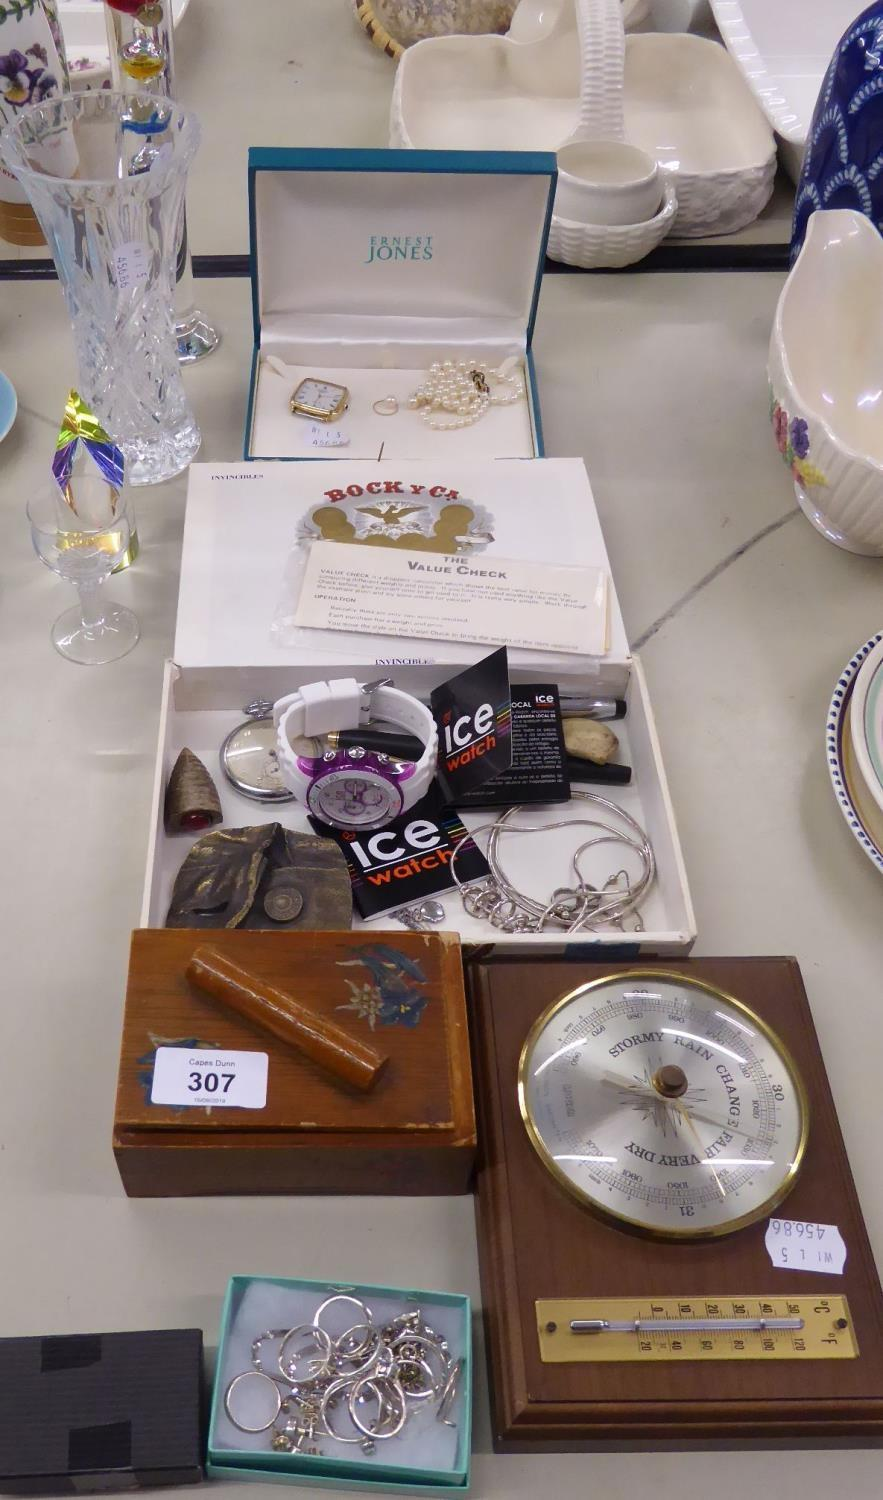 Lot 307 - TWO BALLPOINT PENS, 11 SILVER COLOURED METAL RINGS, FIVE CHAINS, SILVER COLOURED METAL BANGLES,